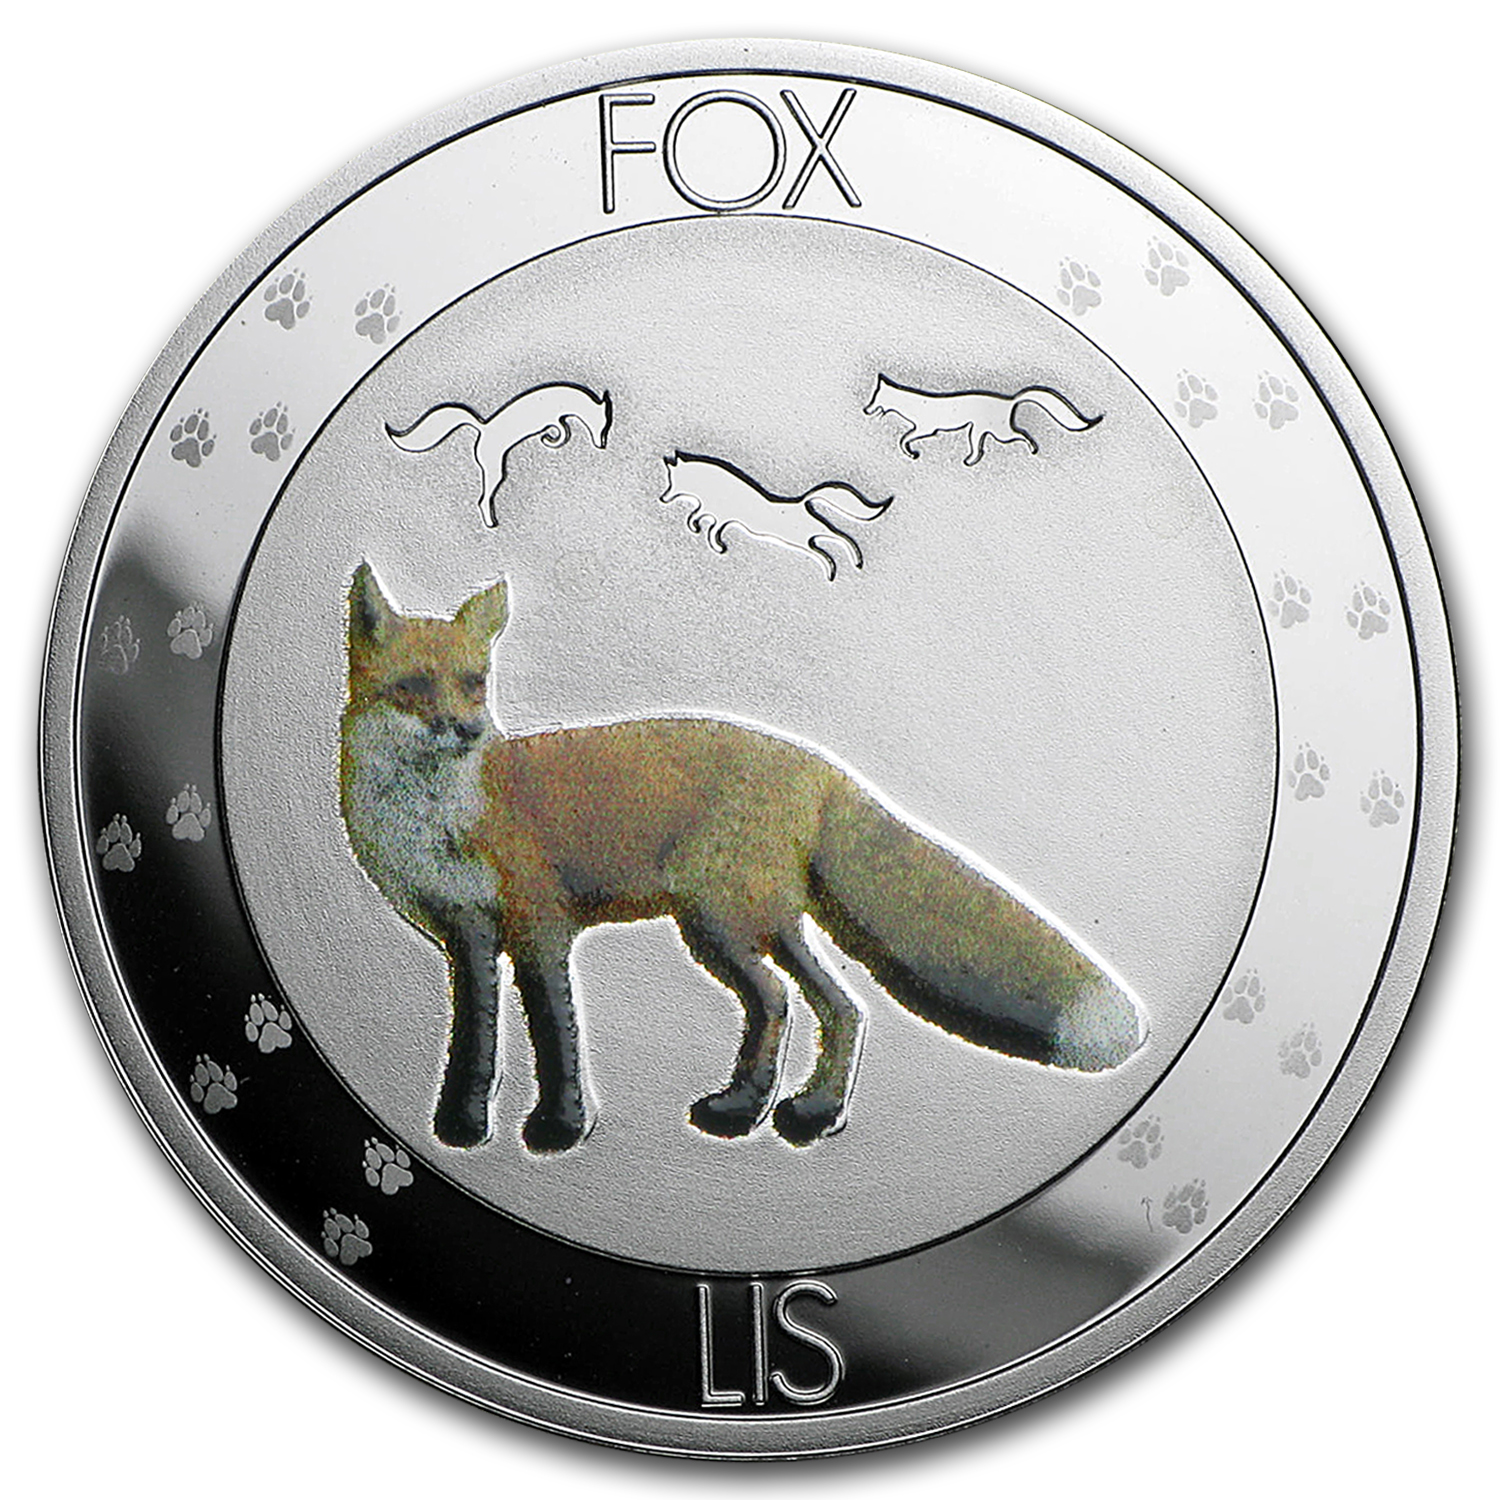 2016 Niue Silver Symbols of Nature Fox Proof